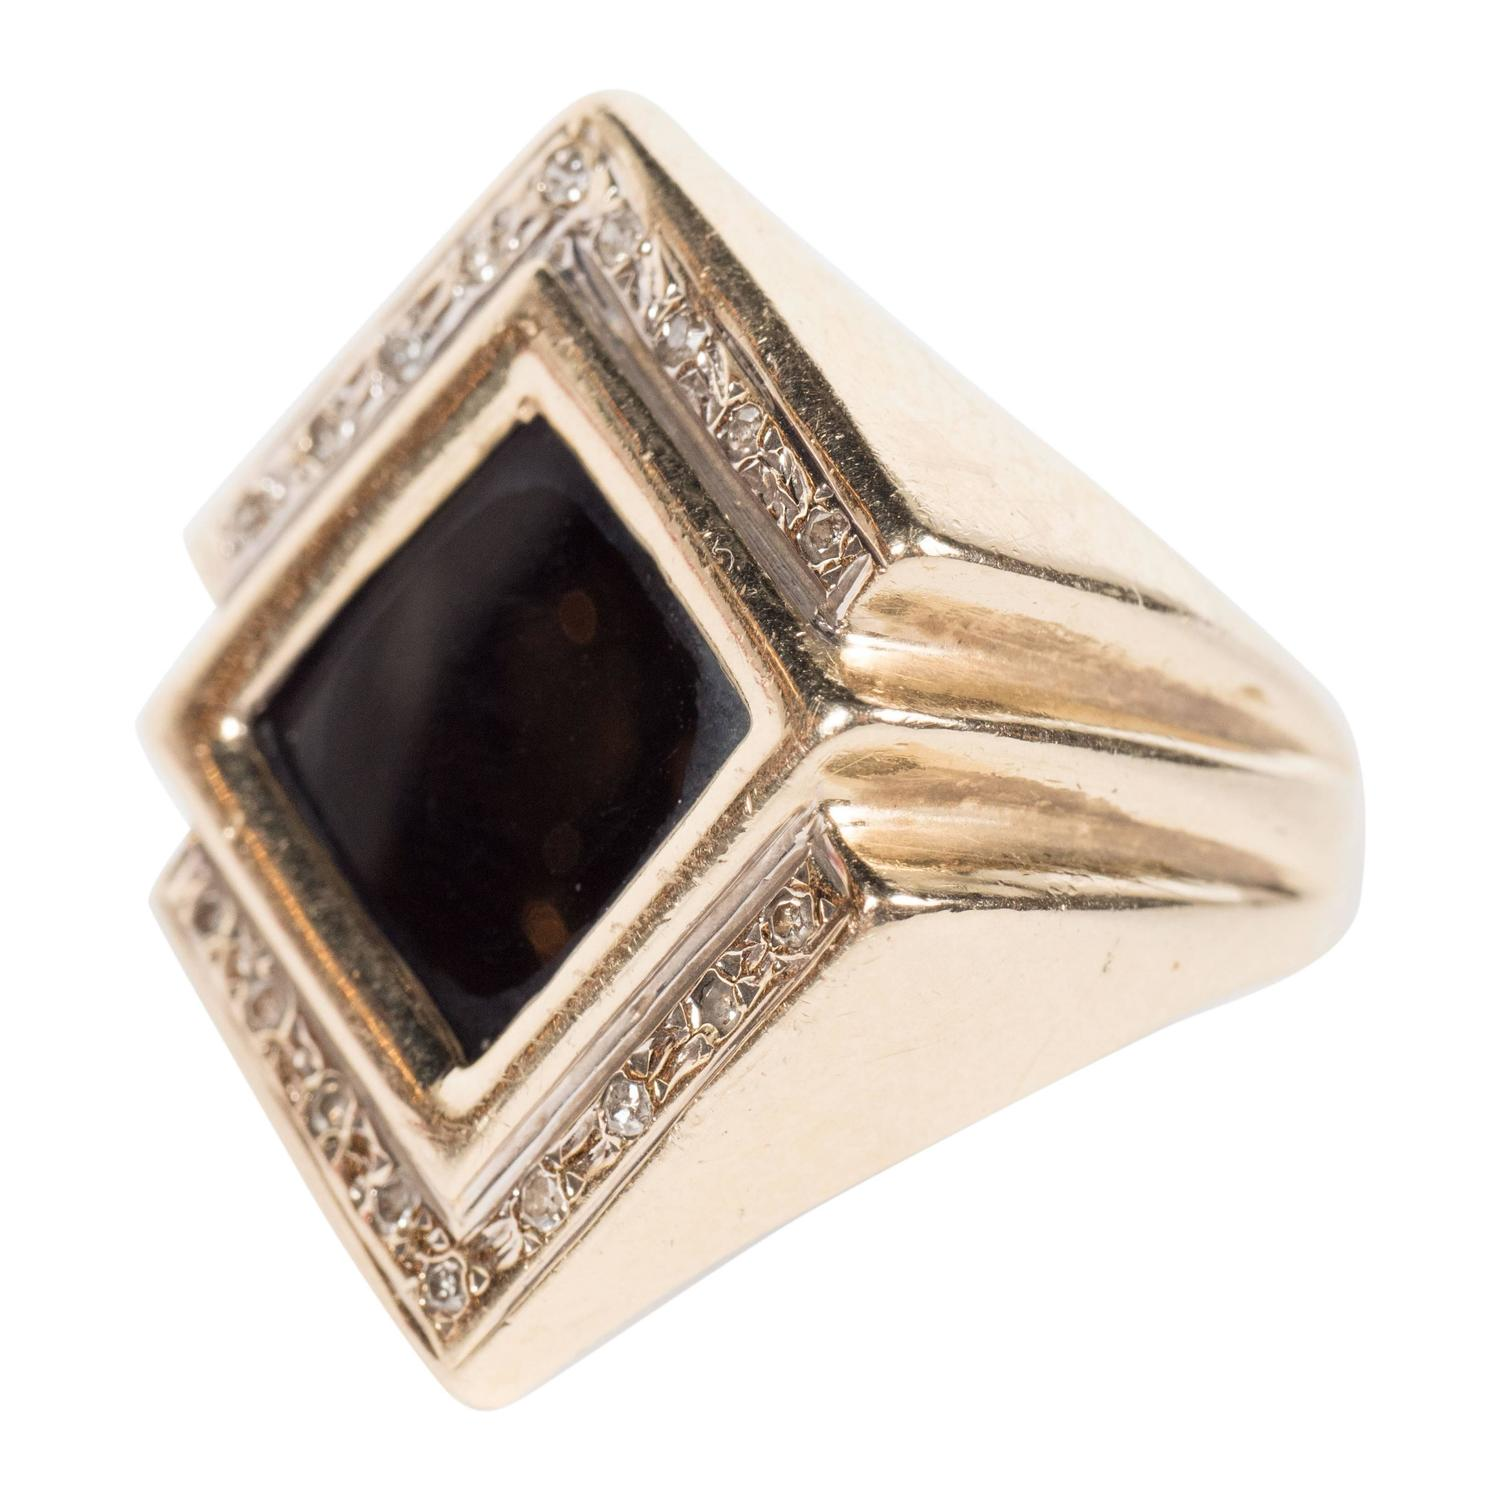 Black yx Diamond Gold Ring For Sale at 1stdibs